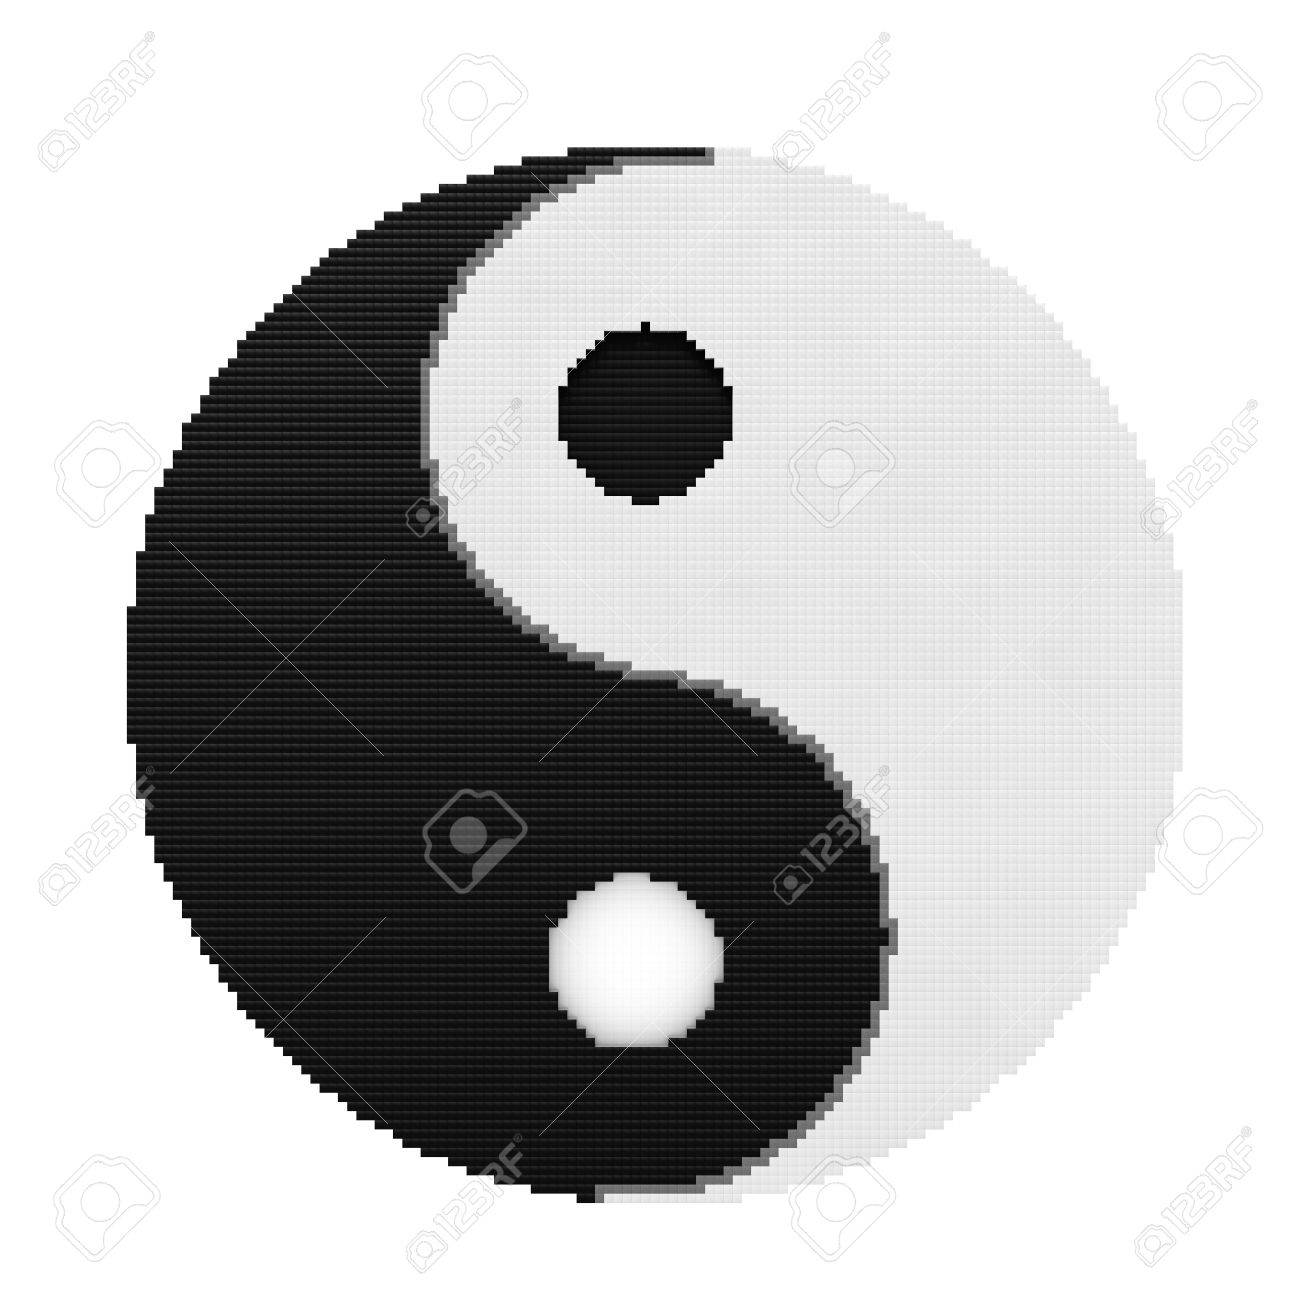 Yin Yang Symbol Of Harmony And Balance In Pixel Art Style On Stock